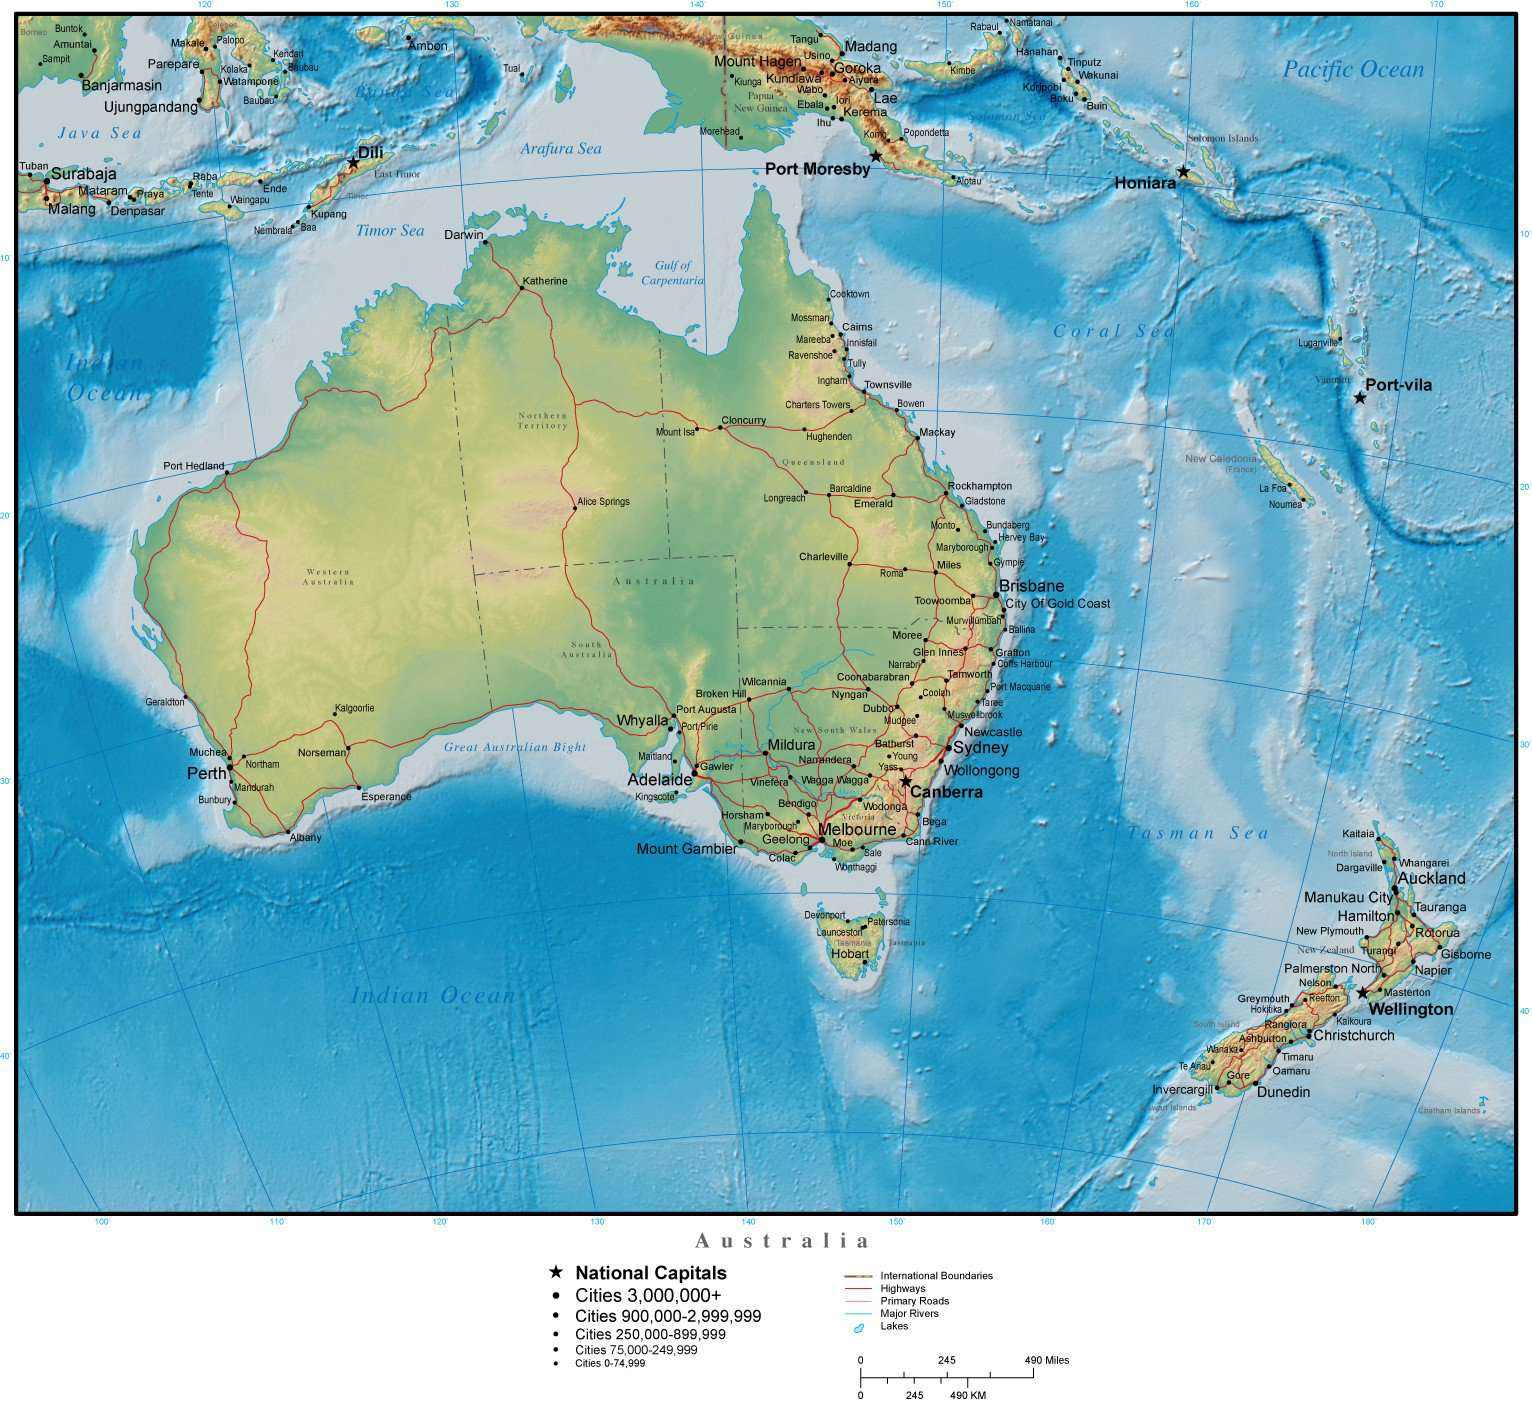 Australia Map with Land and Ocean Floor Terrain on ocean depth map, national geographic maps, http google maps, ocean satellite, google marine navigation maps, ocean bathymetry map, ocean wind maps, world underwater relief maps, ocean topography, ocean temperature maps, bathymetry of hawaiian islands maps, ocean bottom maps, very large world maps, ocean world map vector, ocean pacific website, lackawanna pa military maps, bing topographic maps, ocean edge villages map, ocean geography map,